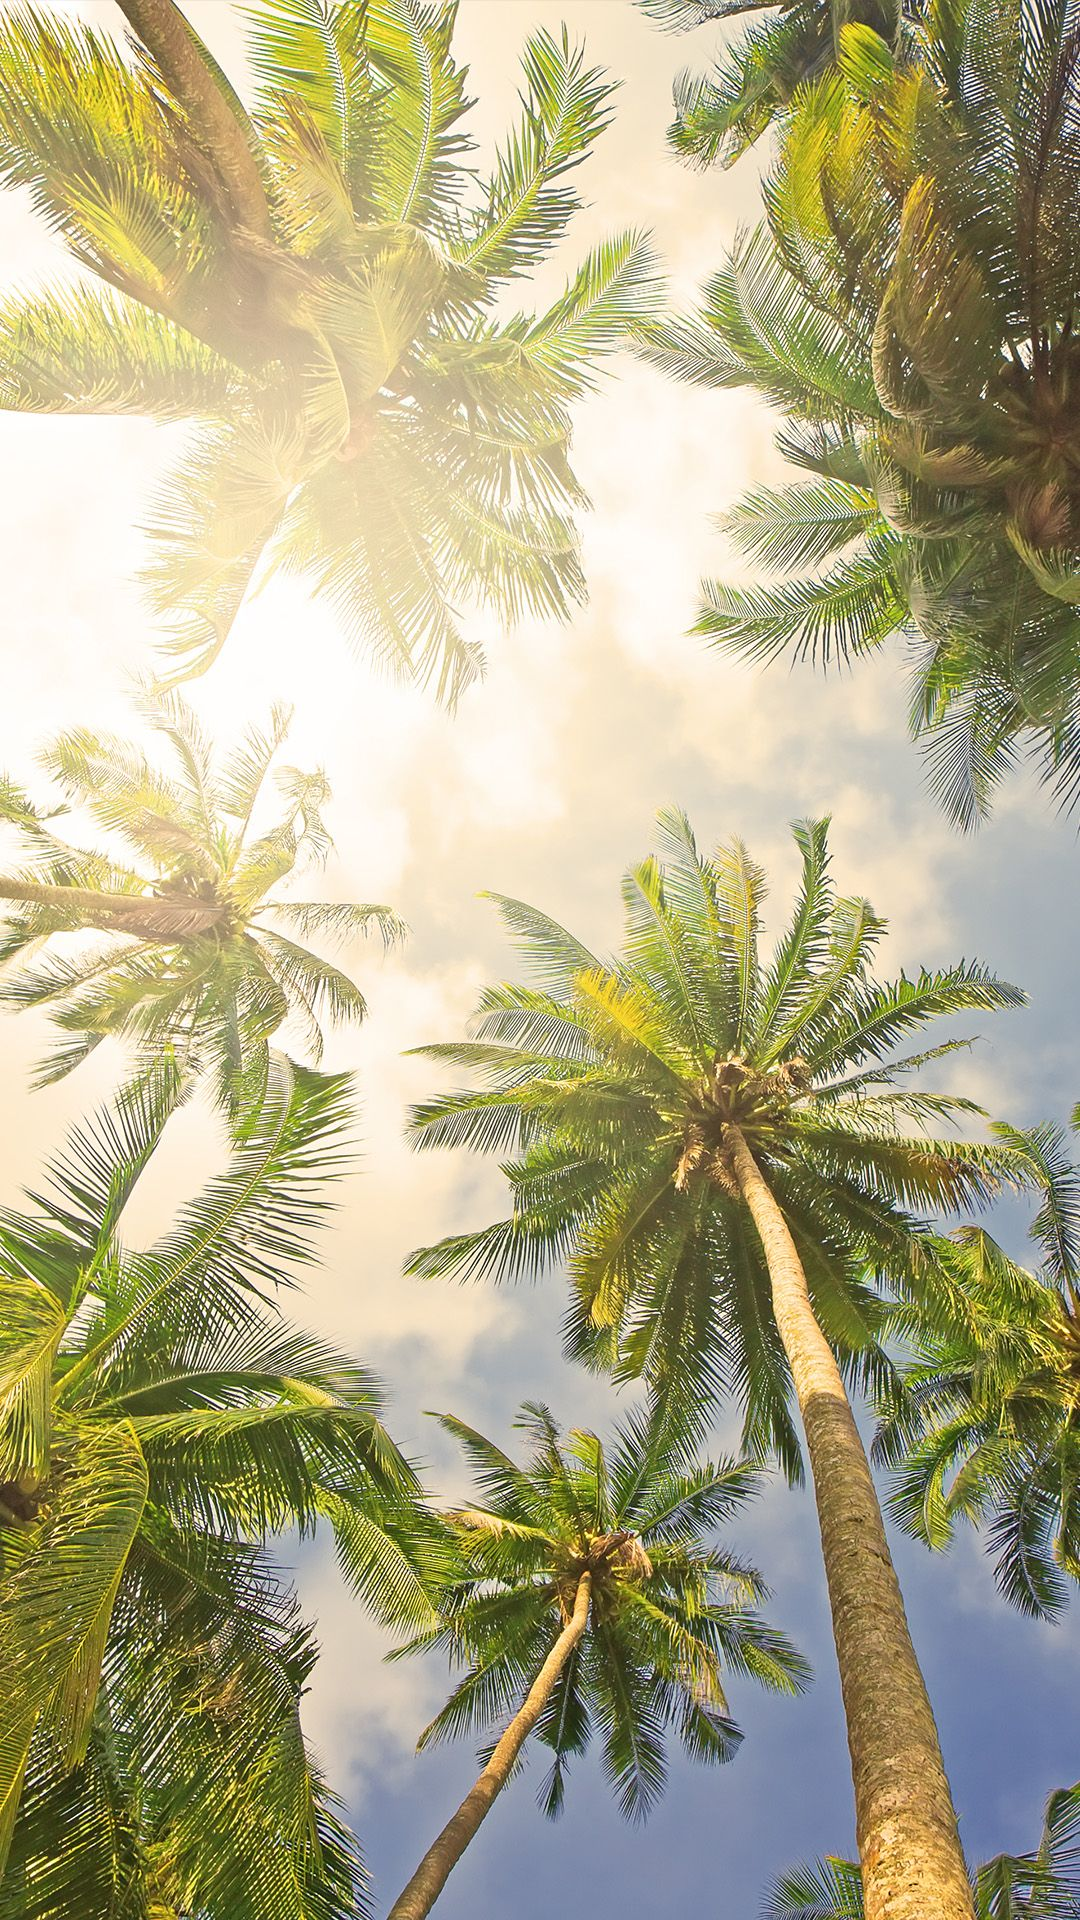 Tap And Get The Free App Art Creative Sky Sun Paradise Travel Vacation Palms Sun Holiday Hd Iphone 6 Palm Trees Wallpaper Tree Wallpaper Iphone 6s Wallpaper Hd wallpaper summerpalm tree sky sun